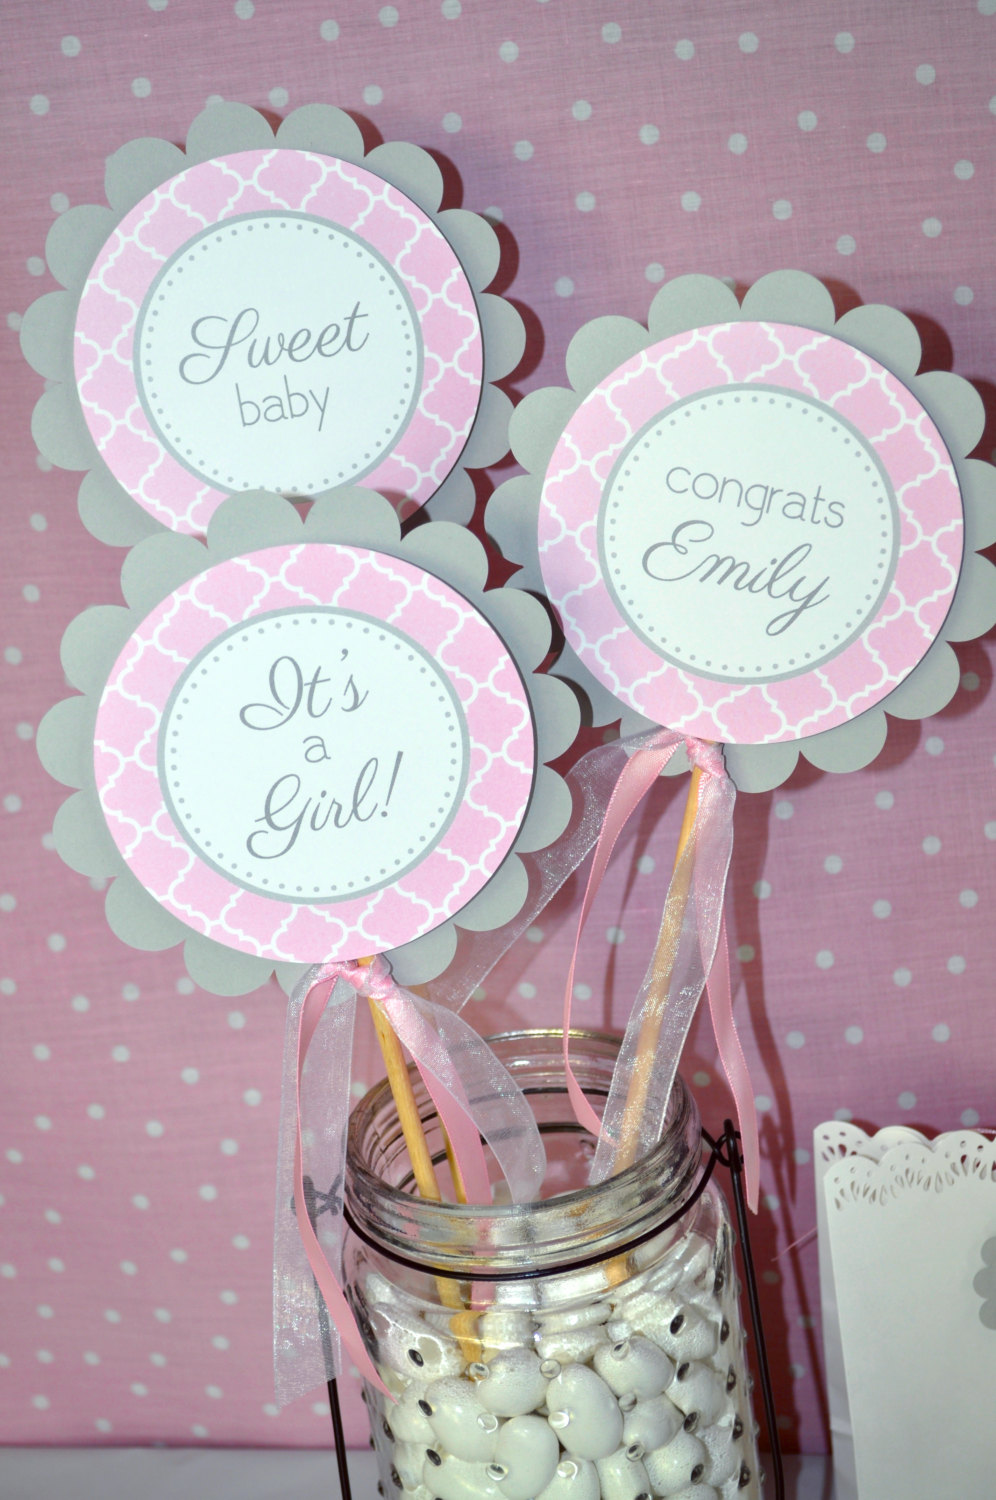 Girls Baby Shower Centerpiece Sticks It S A Girl Baby Shower Decorations Pink And Gray Girl Baby Shower Decorations Set Of 3 So Sweet Party Shop